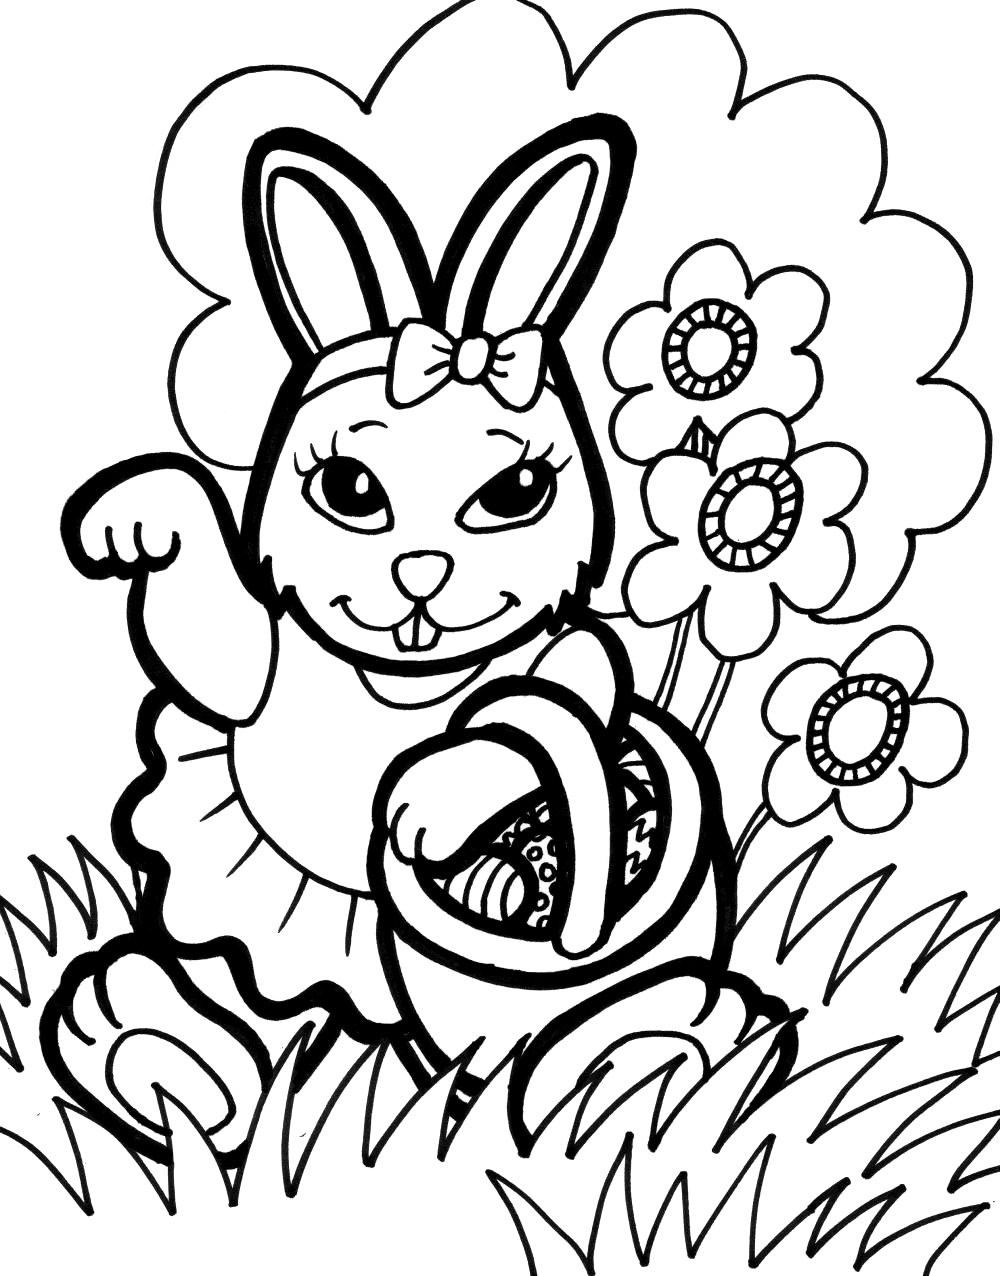 rabbit color pages rabbit to download for free rabbit kids coloring pages rabbit color pages